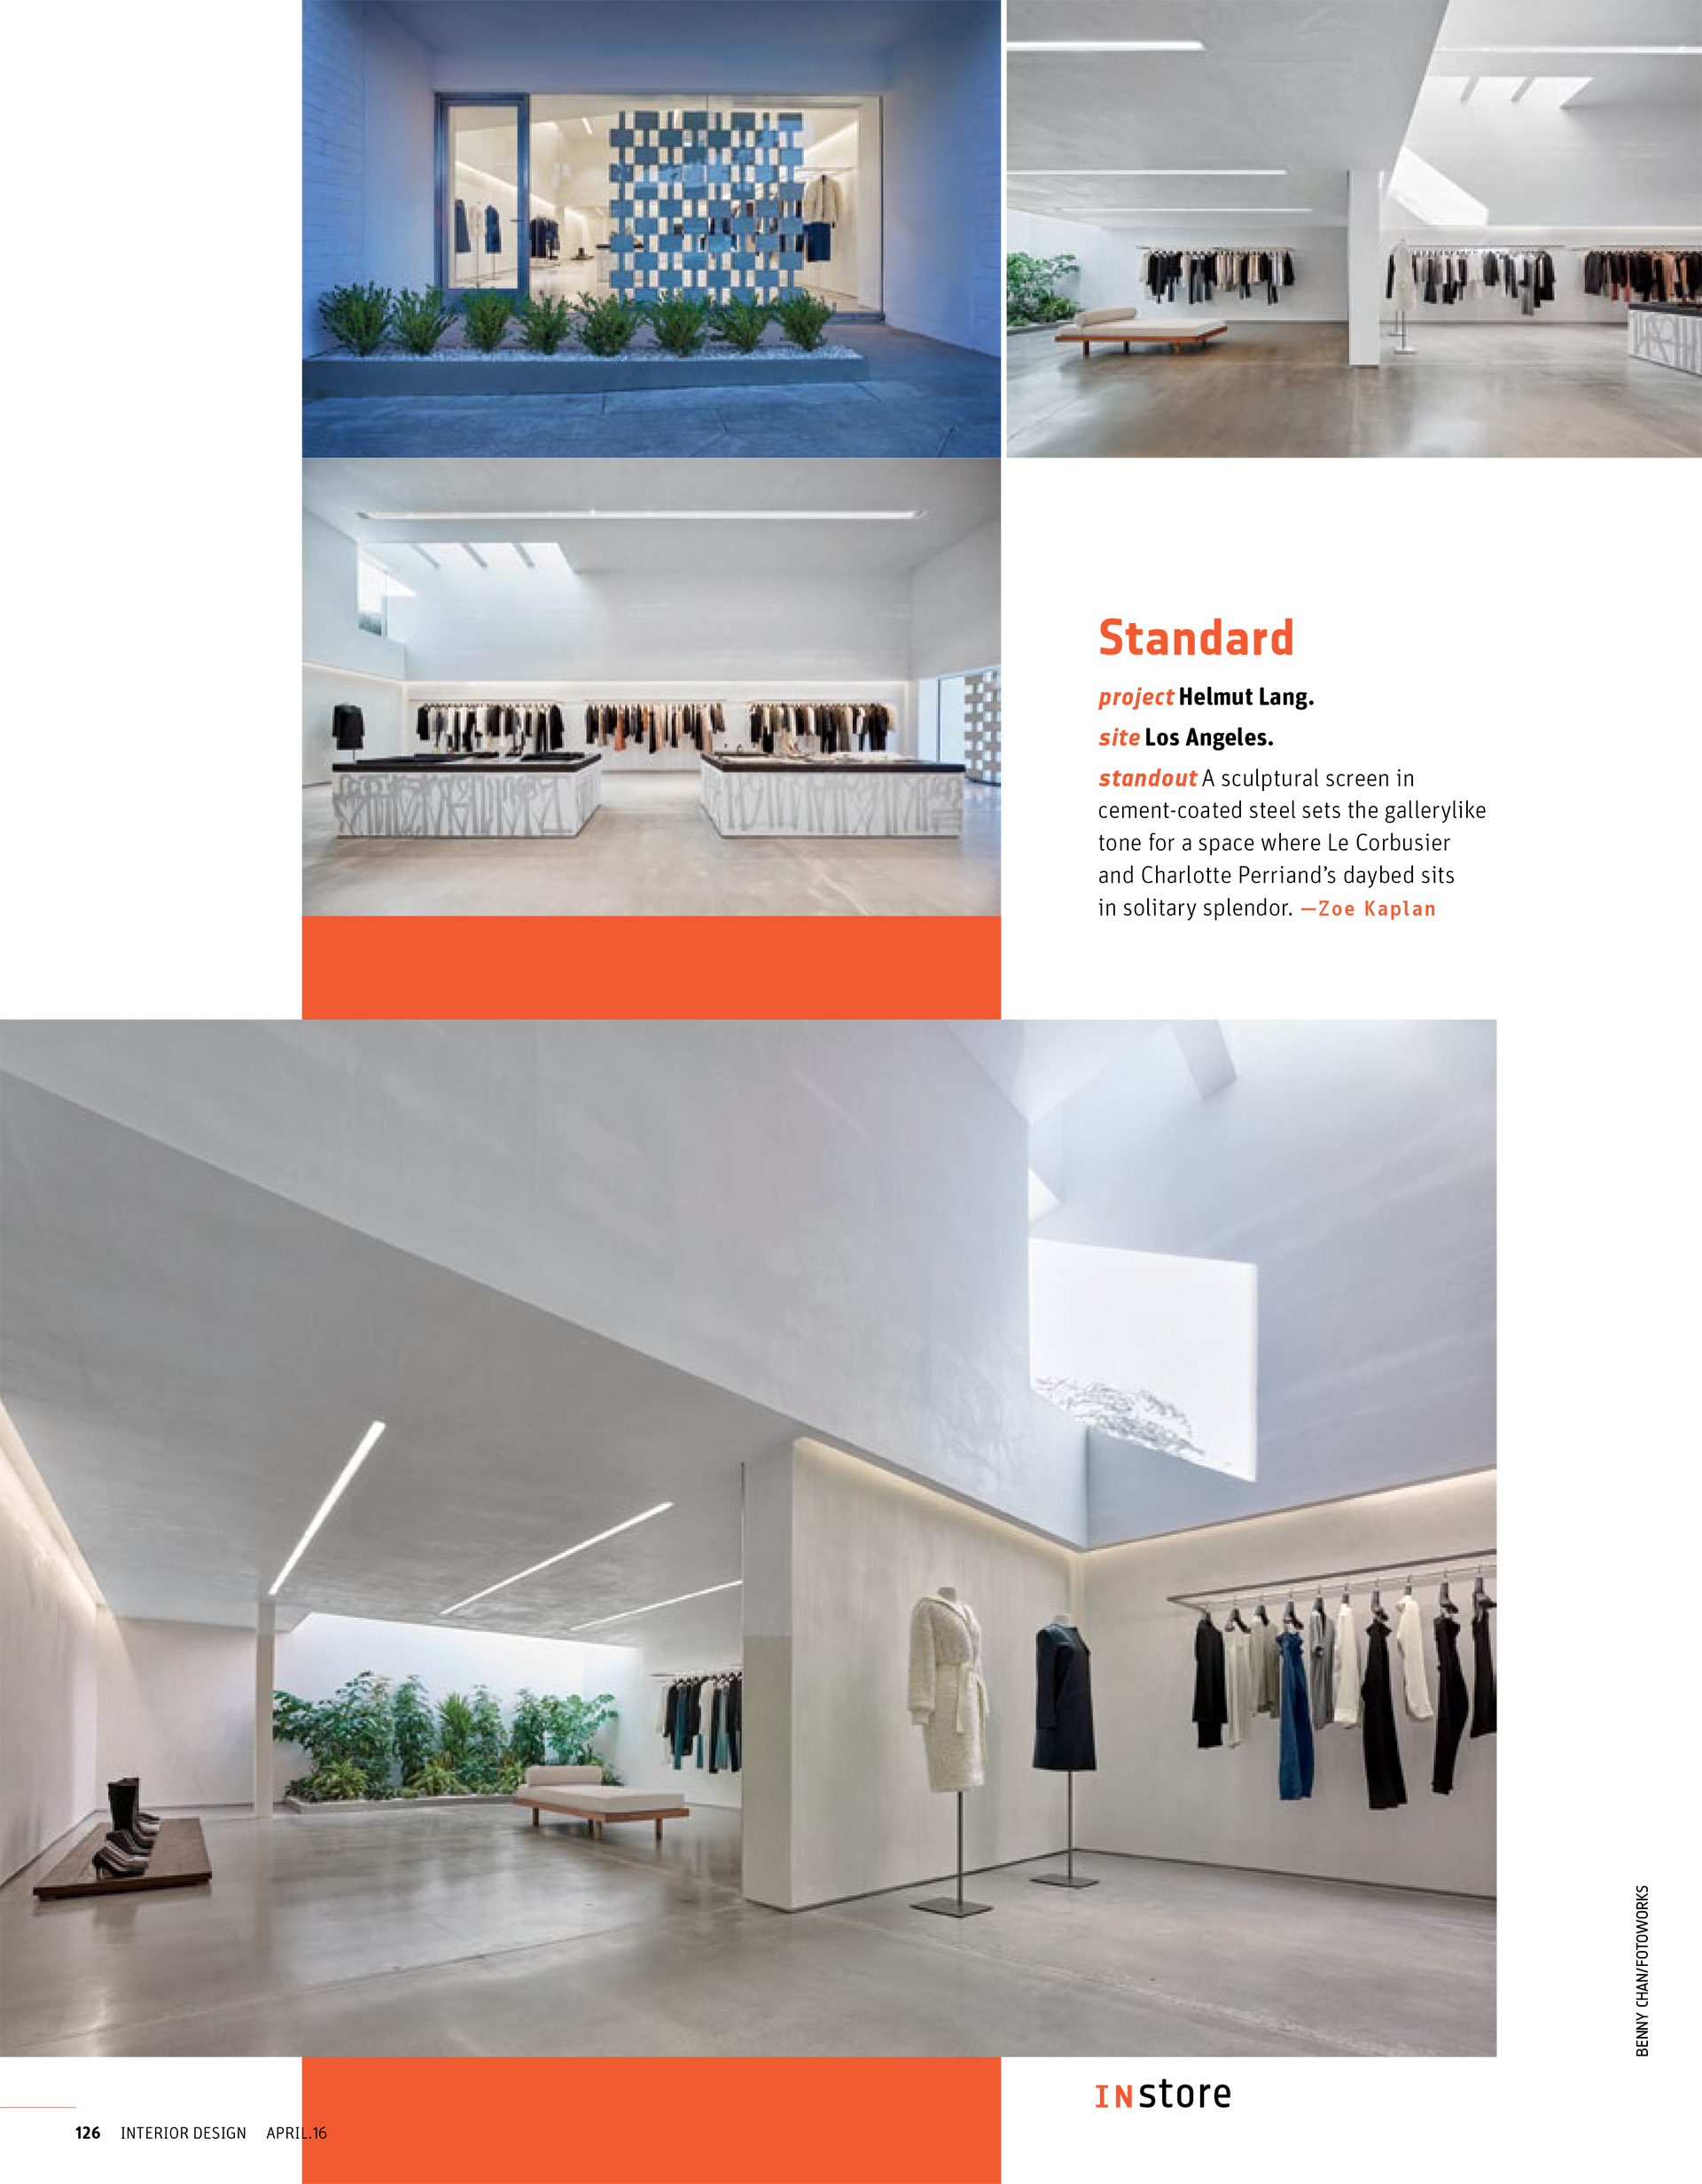 Interior Design Magazine, 4/2016 Publication in magazines  HelmutLang